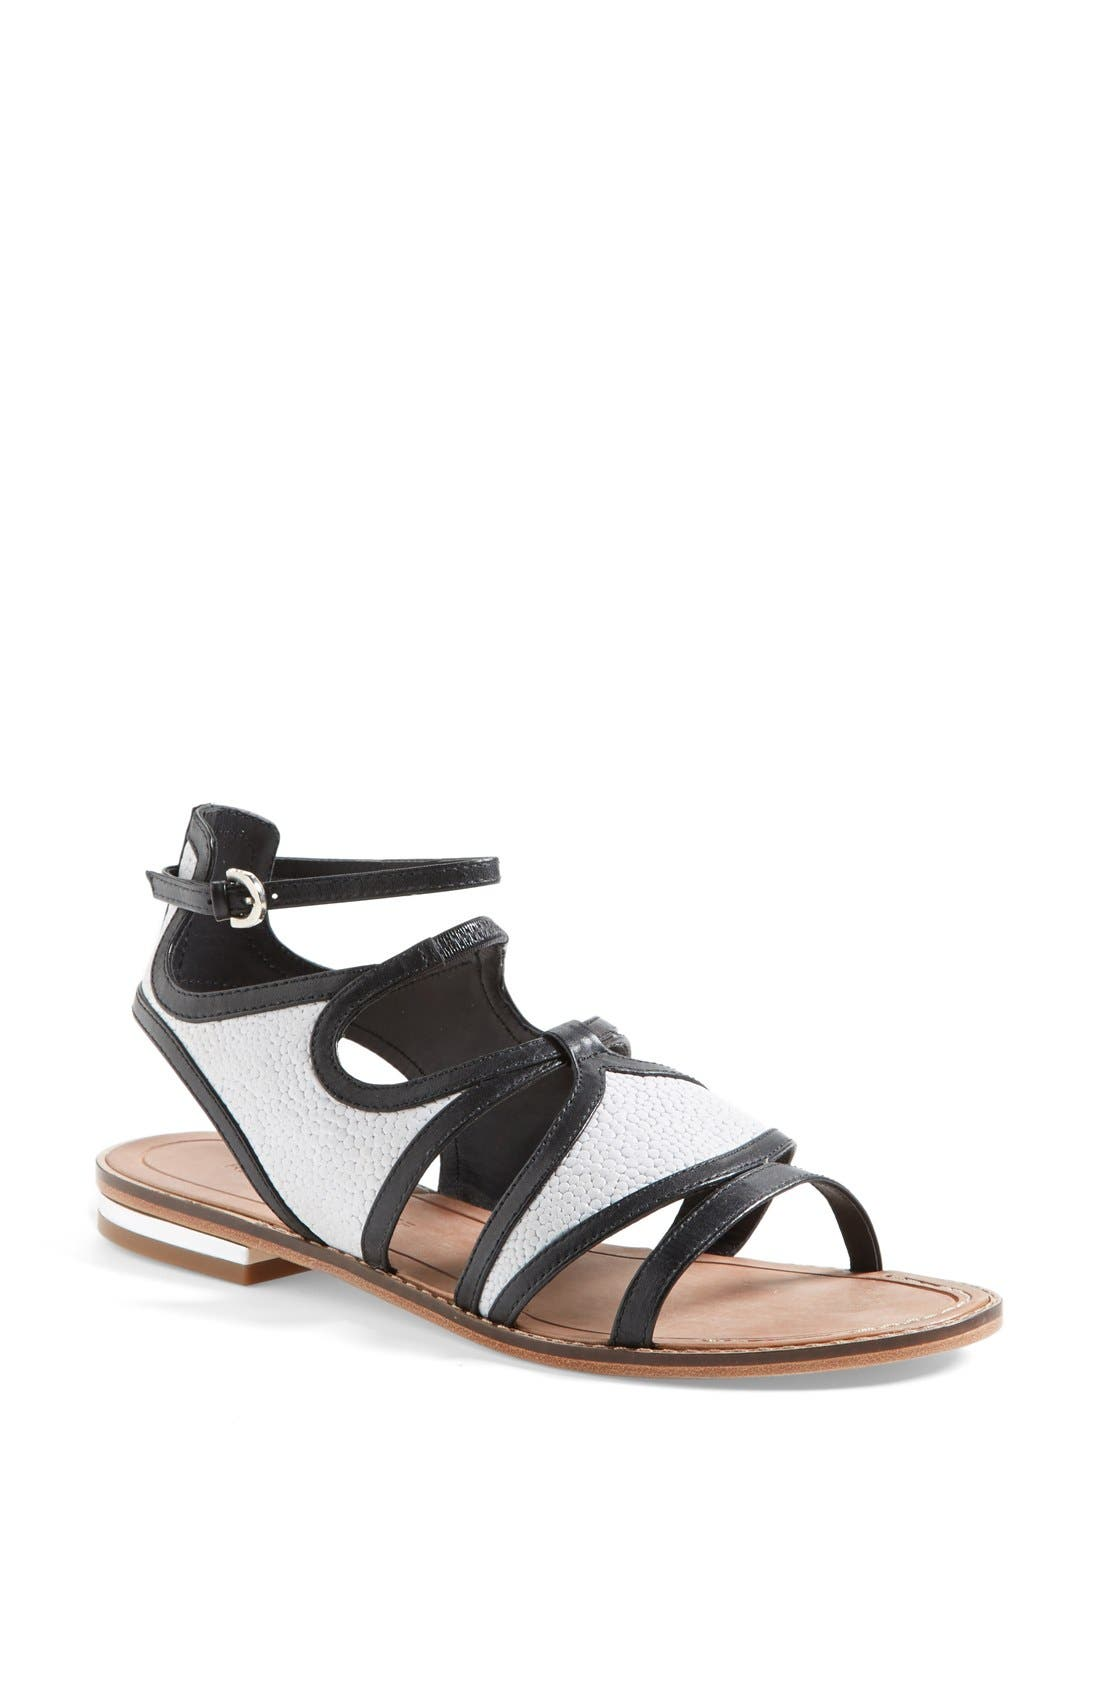 Alternate Image 1 Selected - Rebecca Minkoff 'Simon' Sandal